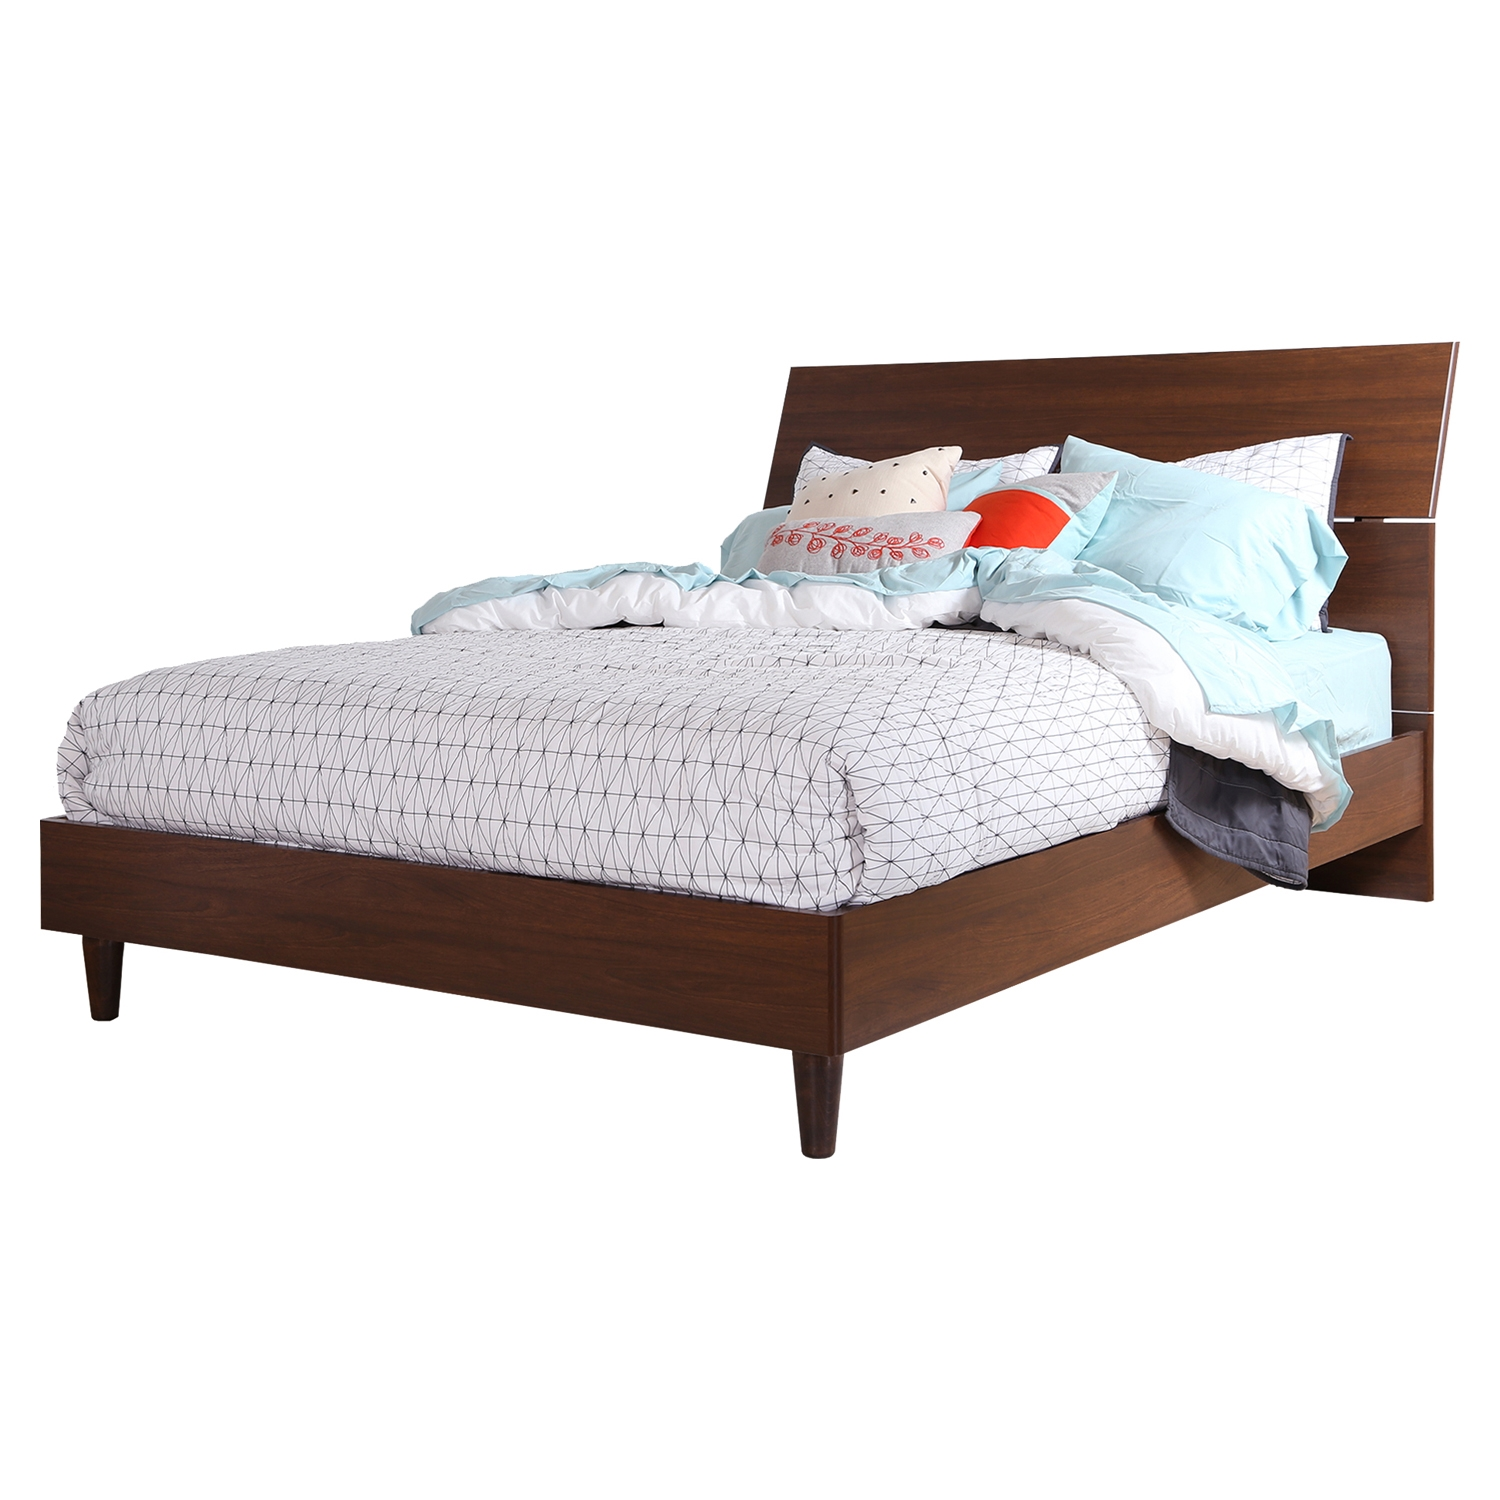 Olly Queen Platform Bedroom Set - Brown Walnut - SS-3828-BED-SET